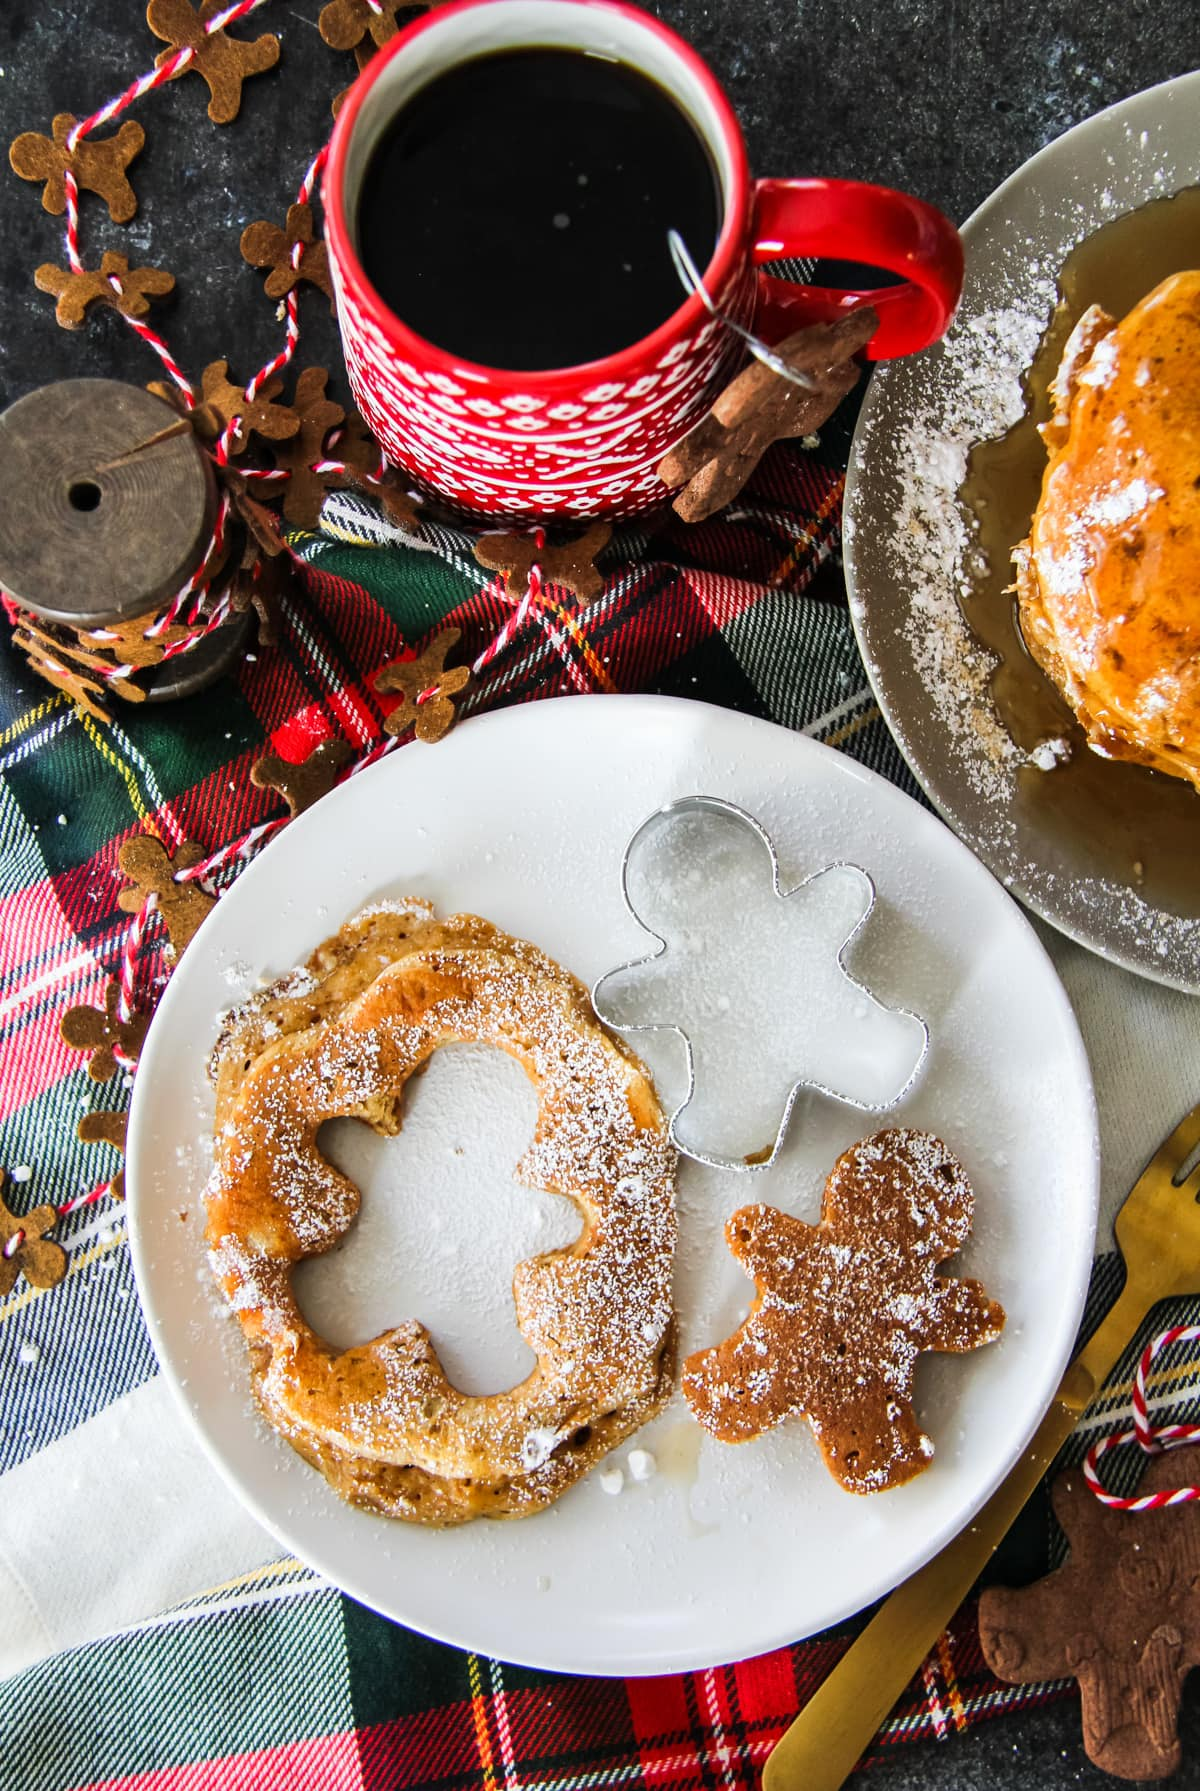 a Gingerbread Pancake on a plate with a gingerbread man cut out of the centre. background includes a stack of pancakes, a cup of coffee, a plaid napkin and a felt mini gingerbread man garland